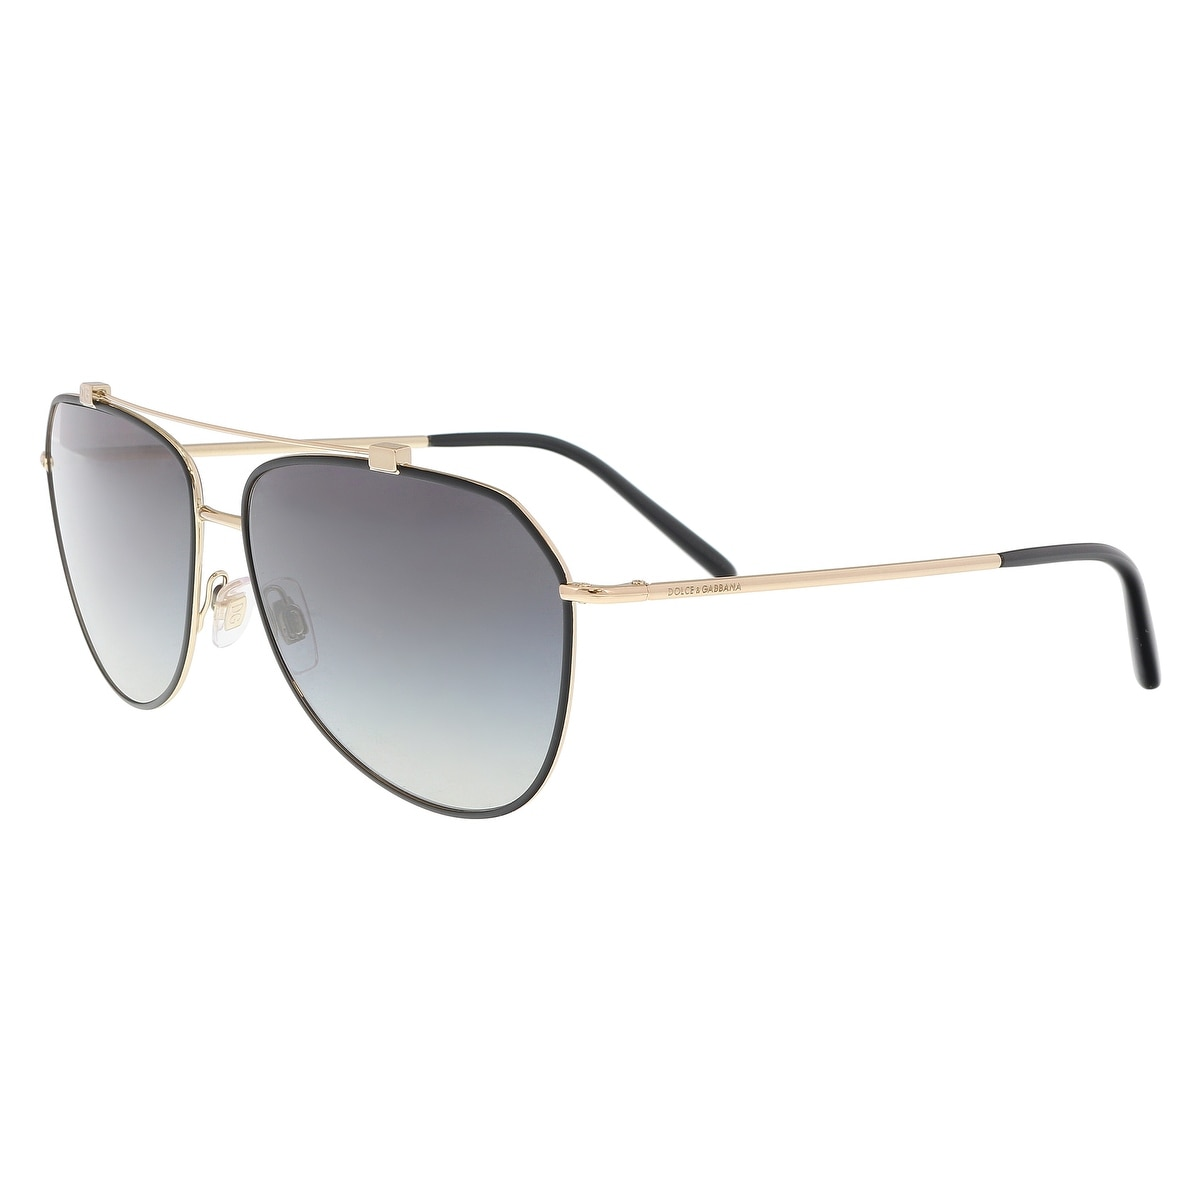 88d85282b8bf Dolce & Gabbana Women's Sunglasses | Find Great Sunglasses Deals Shopping  at Overstock